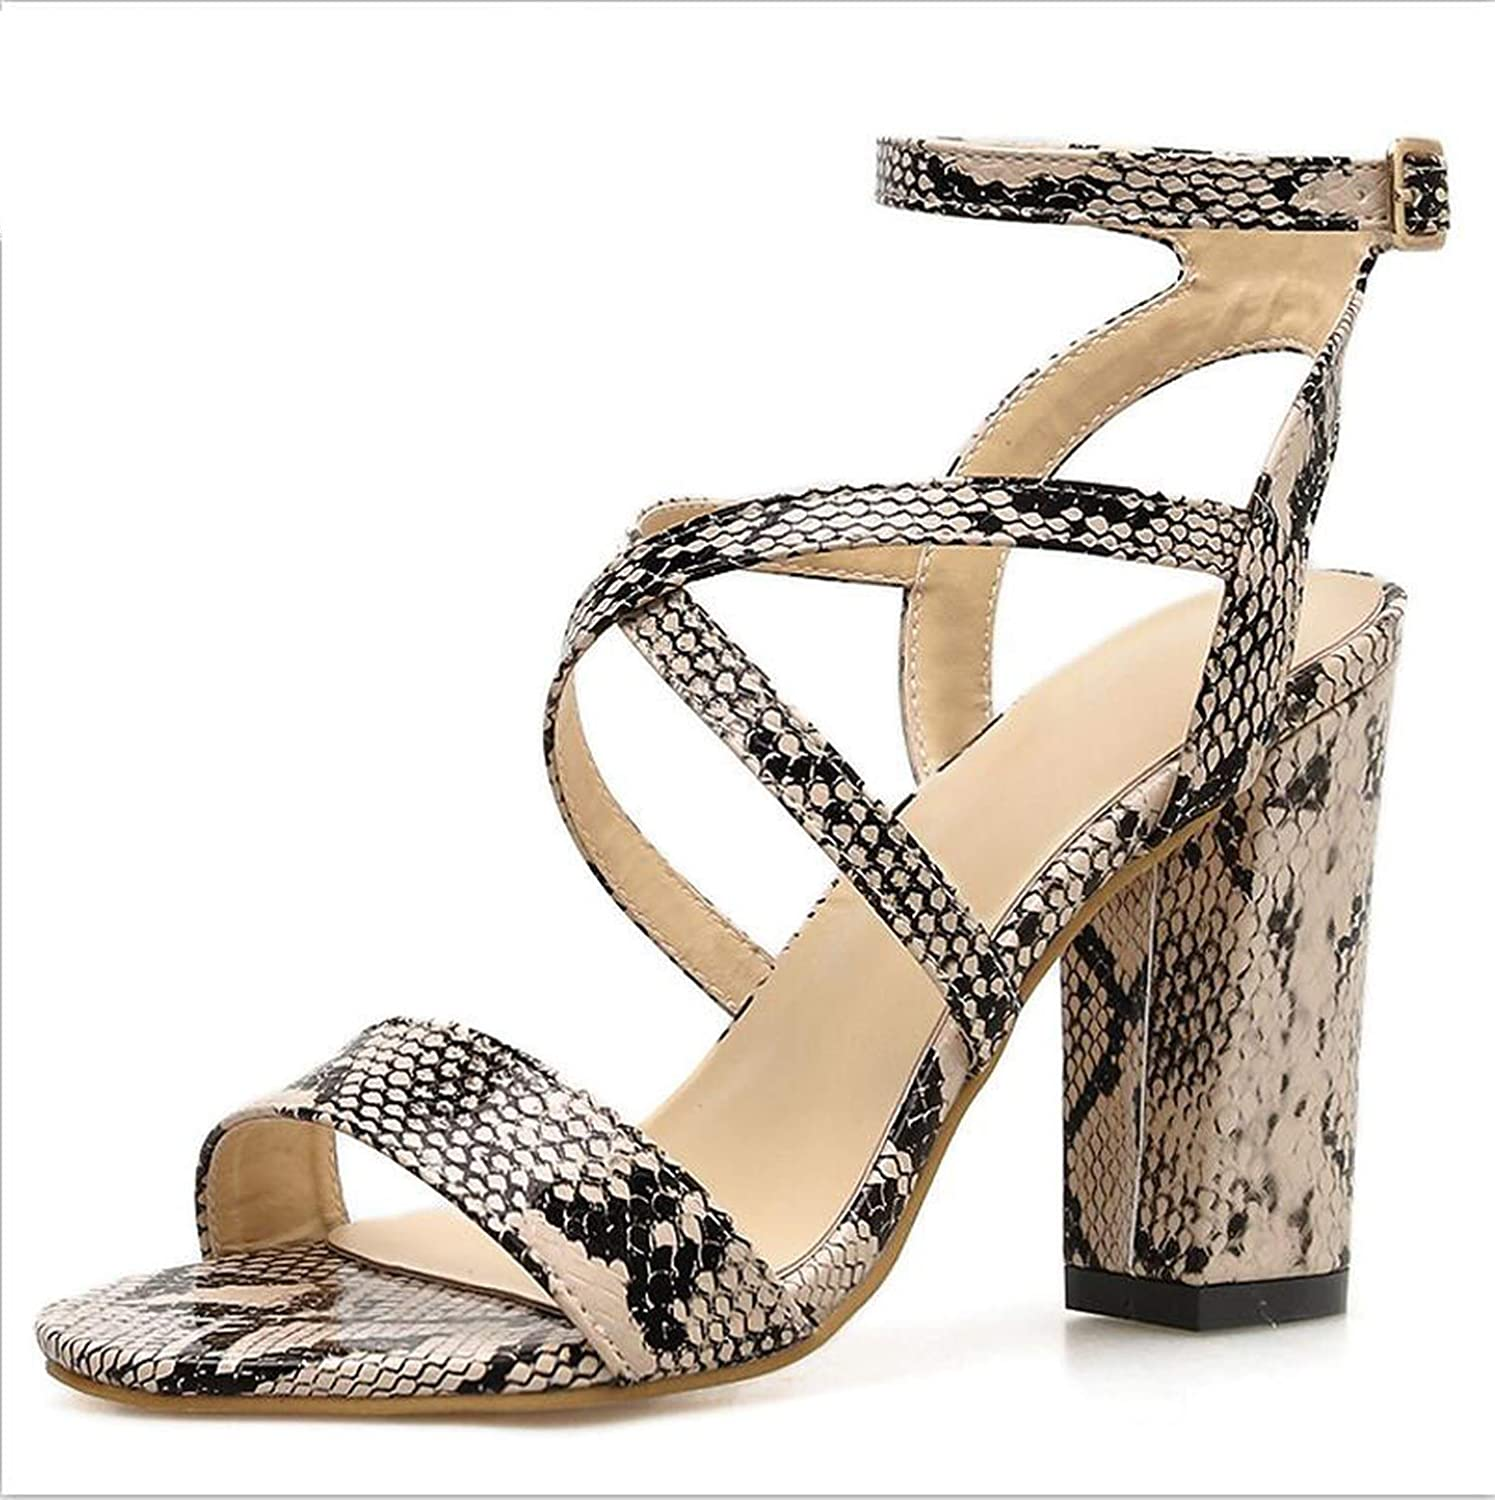 Summer Sexy Pu Women Heeled Sandals Ankle Strap Gladiator Pumps High Heels Peep Toe Dress Lady shoes 35-40